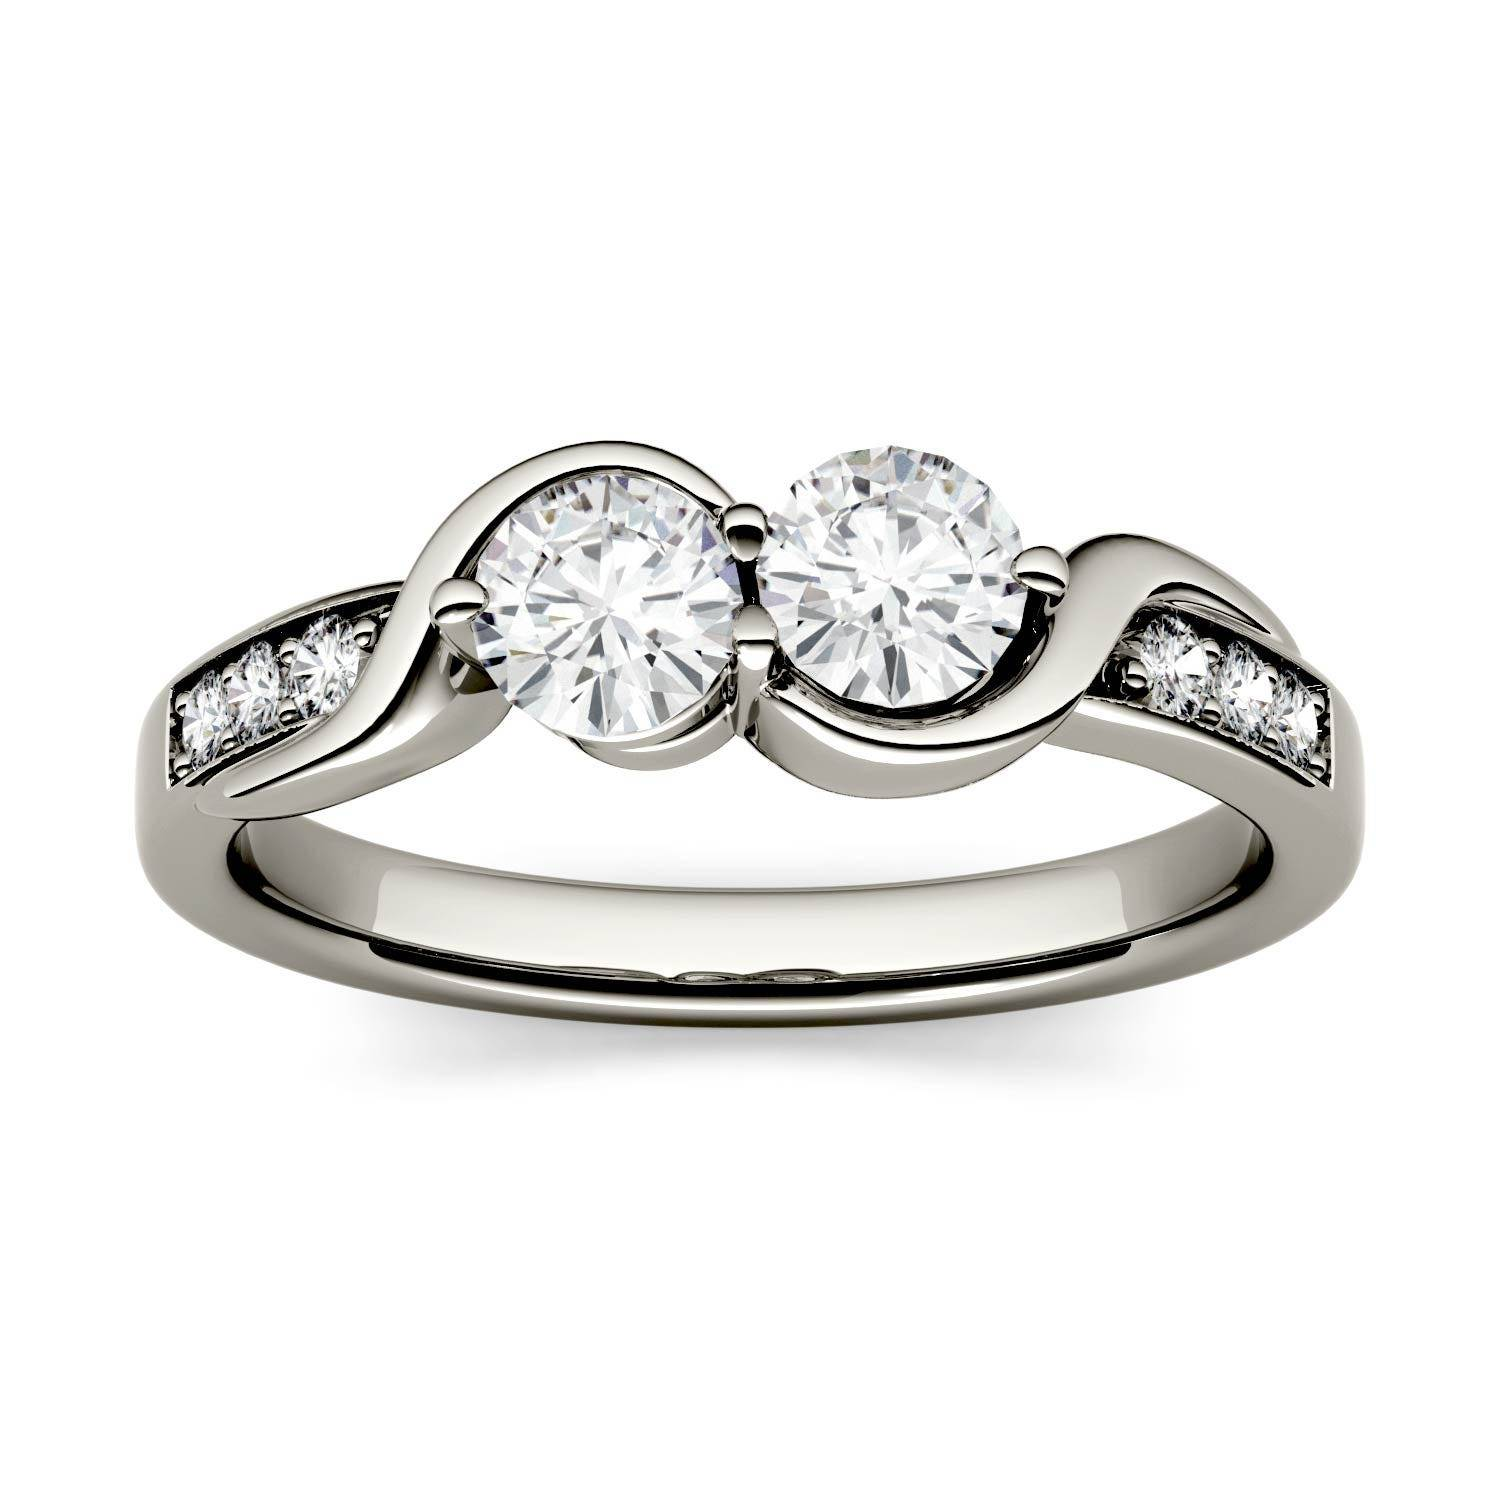 Charles & Colvard Two Stone Swirl with Side Accents Wedding Ring in 14K White Gold, Size: 6, 1.12CTW Round Forever One - Colorless Moissanite Charles & Colvard  - White Gold - Size: 6